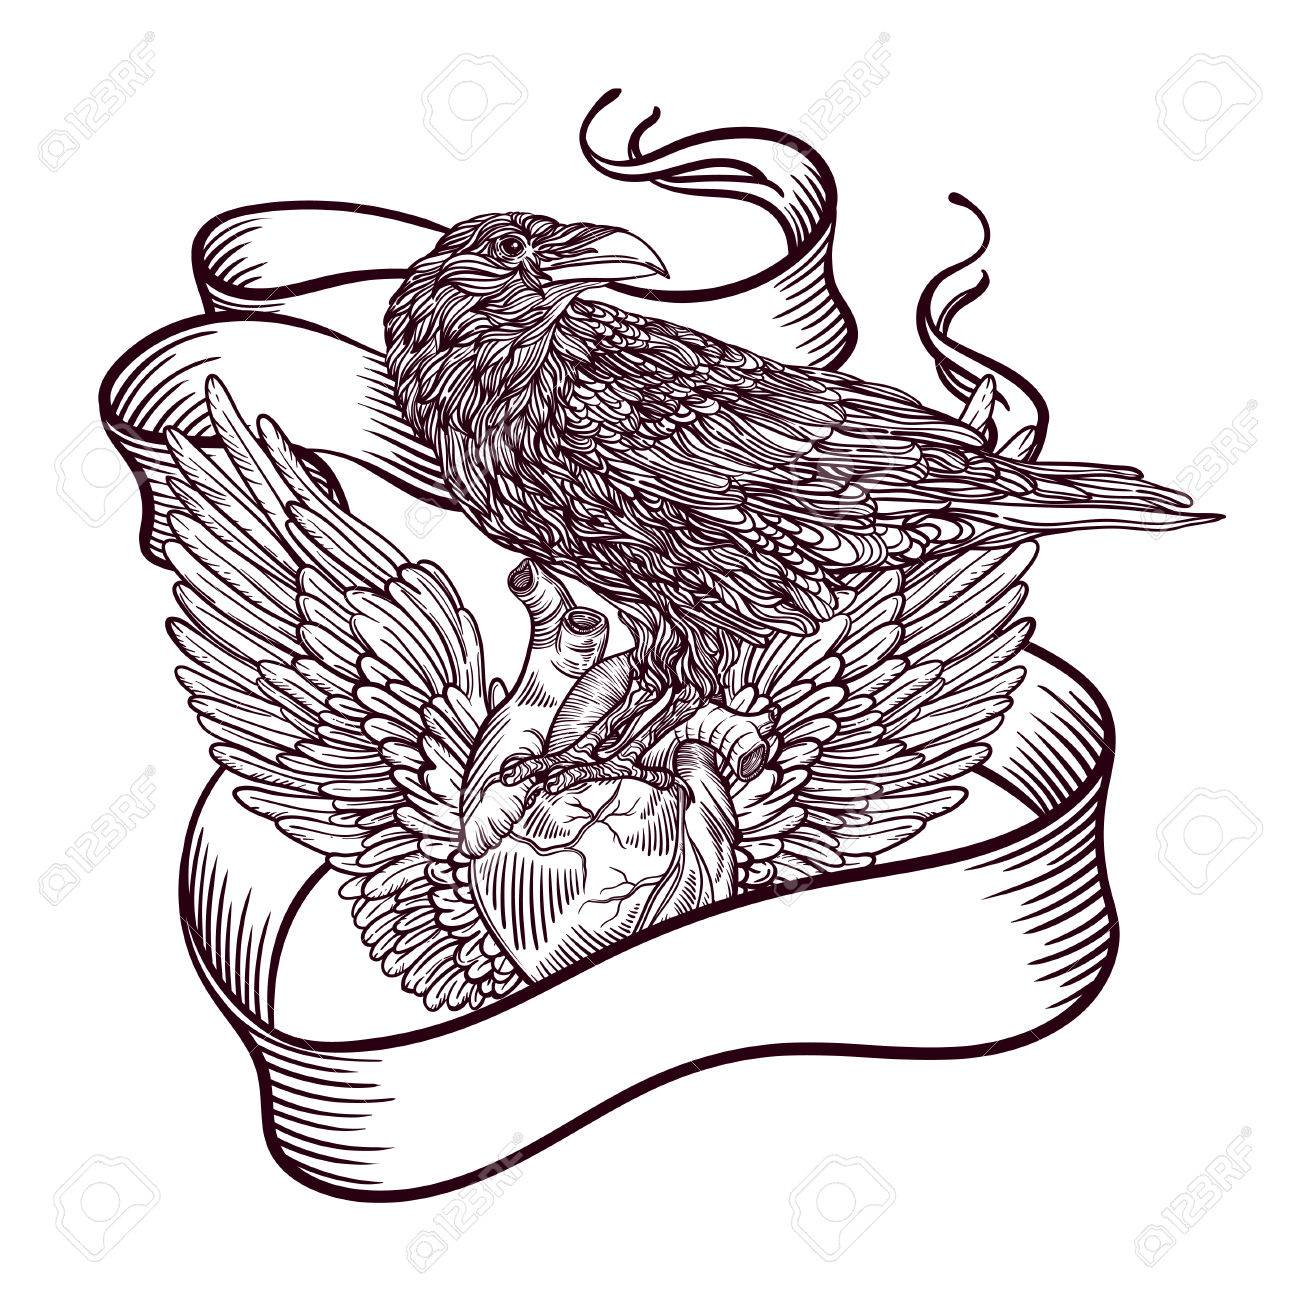 1300x1300 Line Art Illustration Of Angel Wings And Heart And Bird Raven